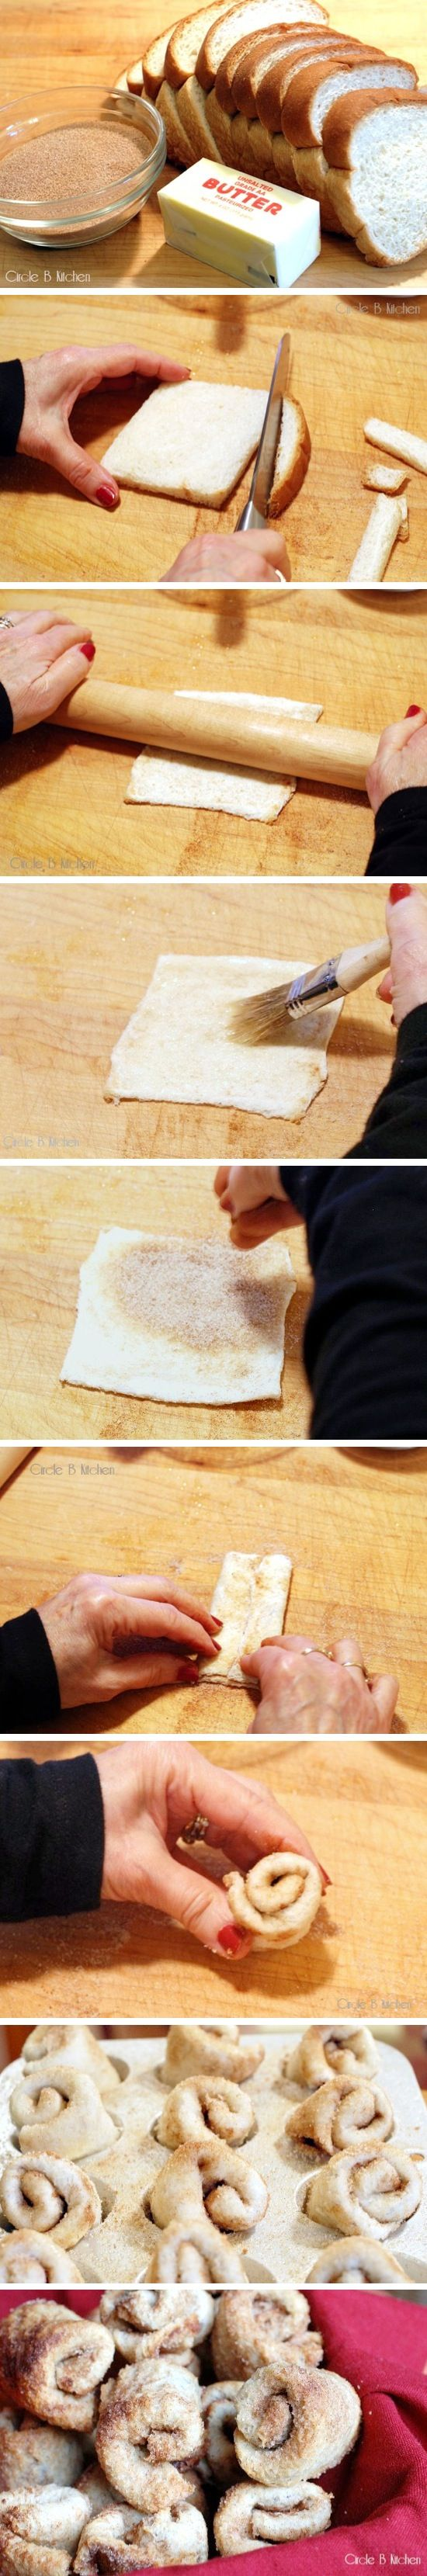 Cinnamon Toast Rolls | Preheat to 375 and bake for 15 to 20 minutes.